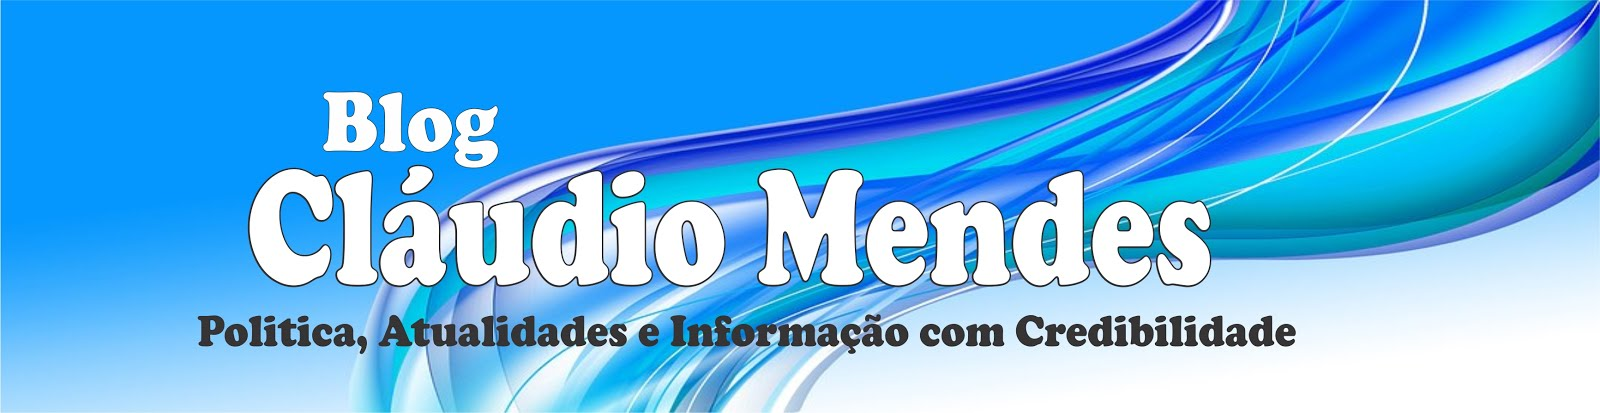 Blog do Claudio Mendes